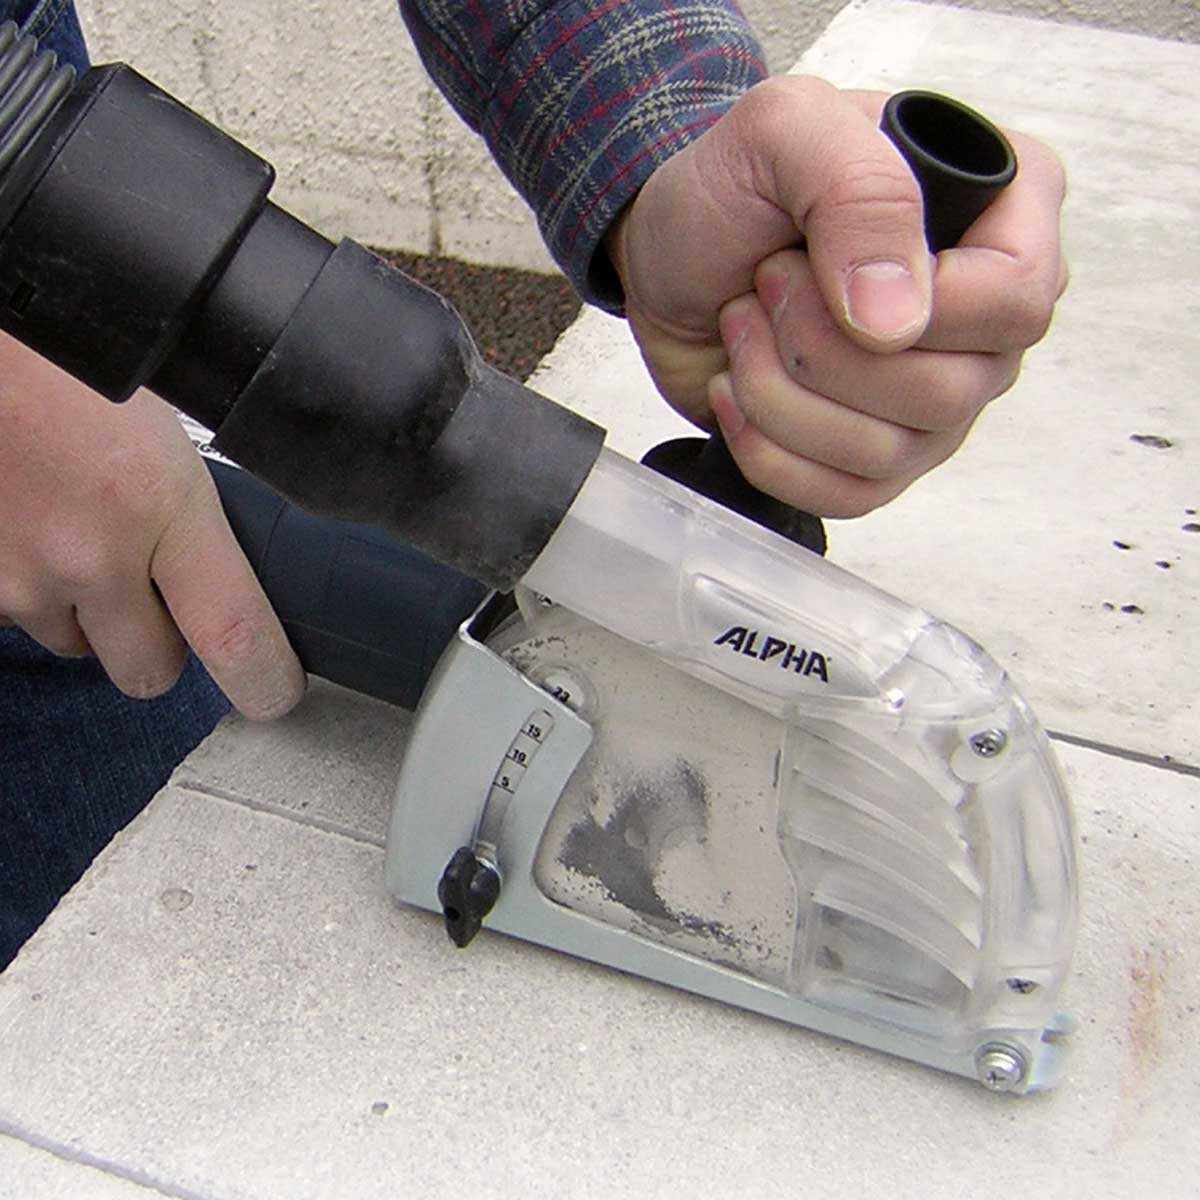 osha standard dustless attachment for grinder